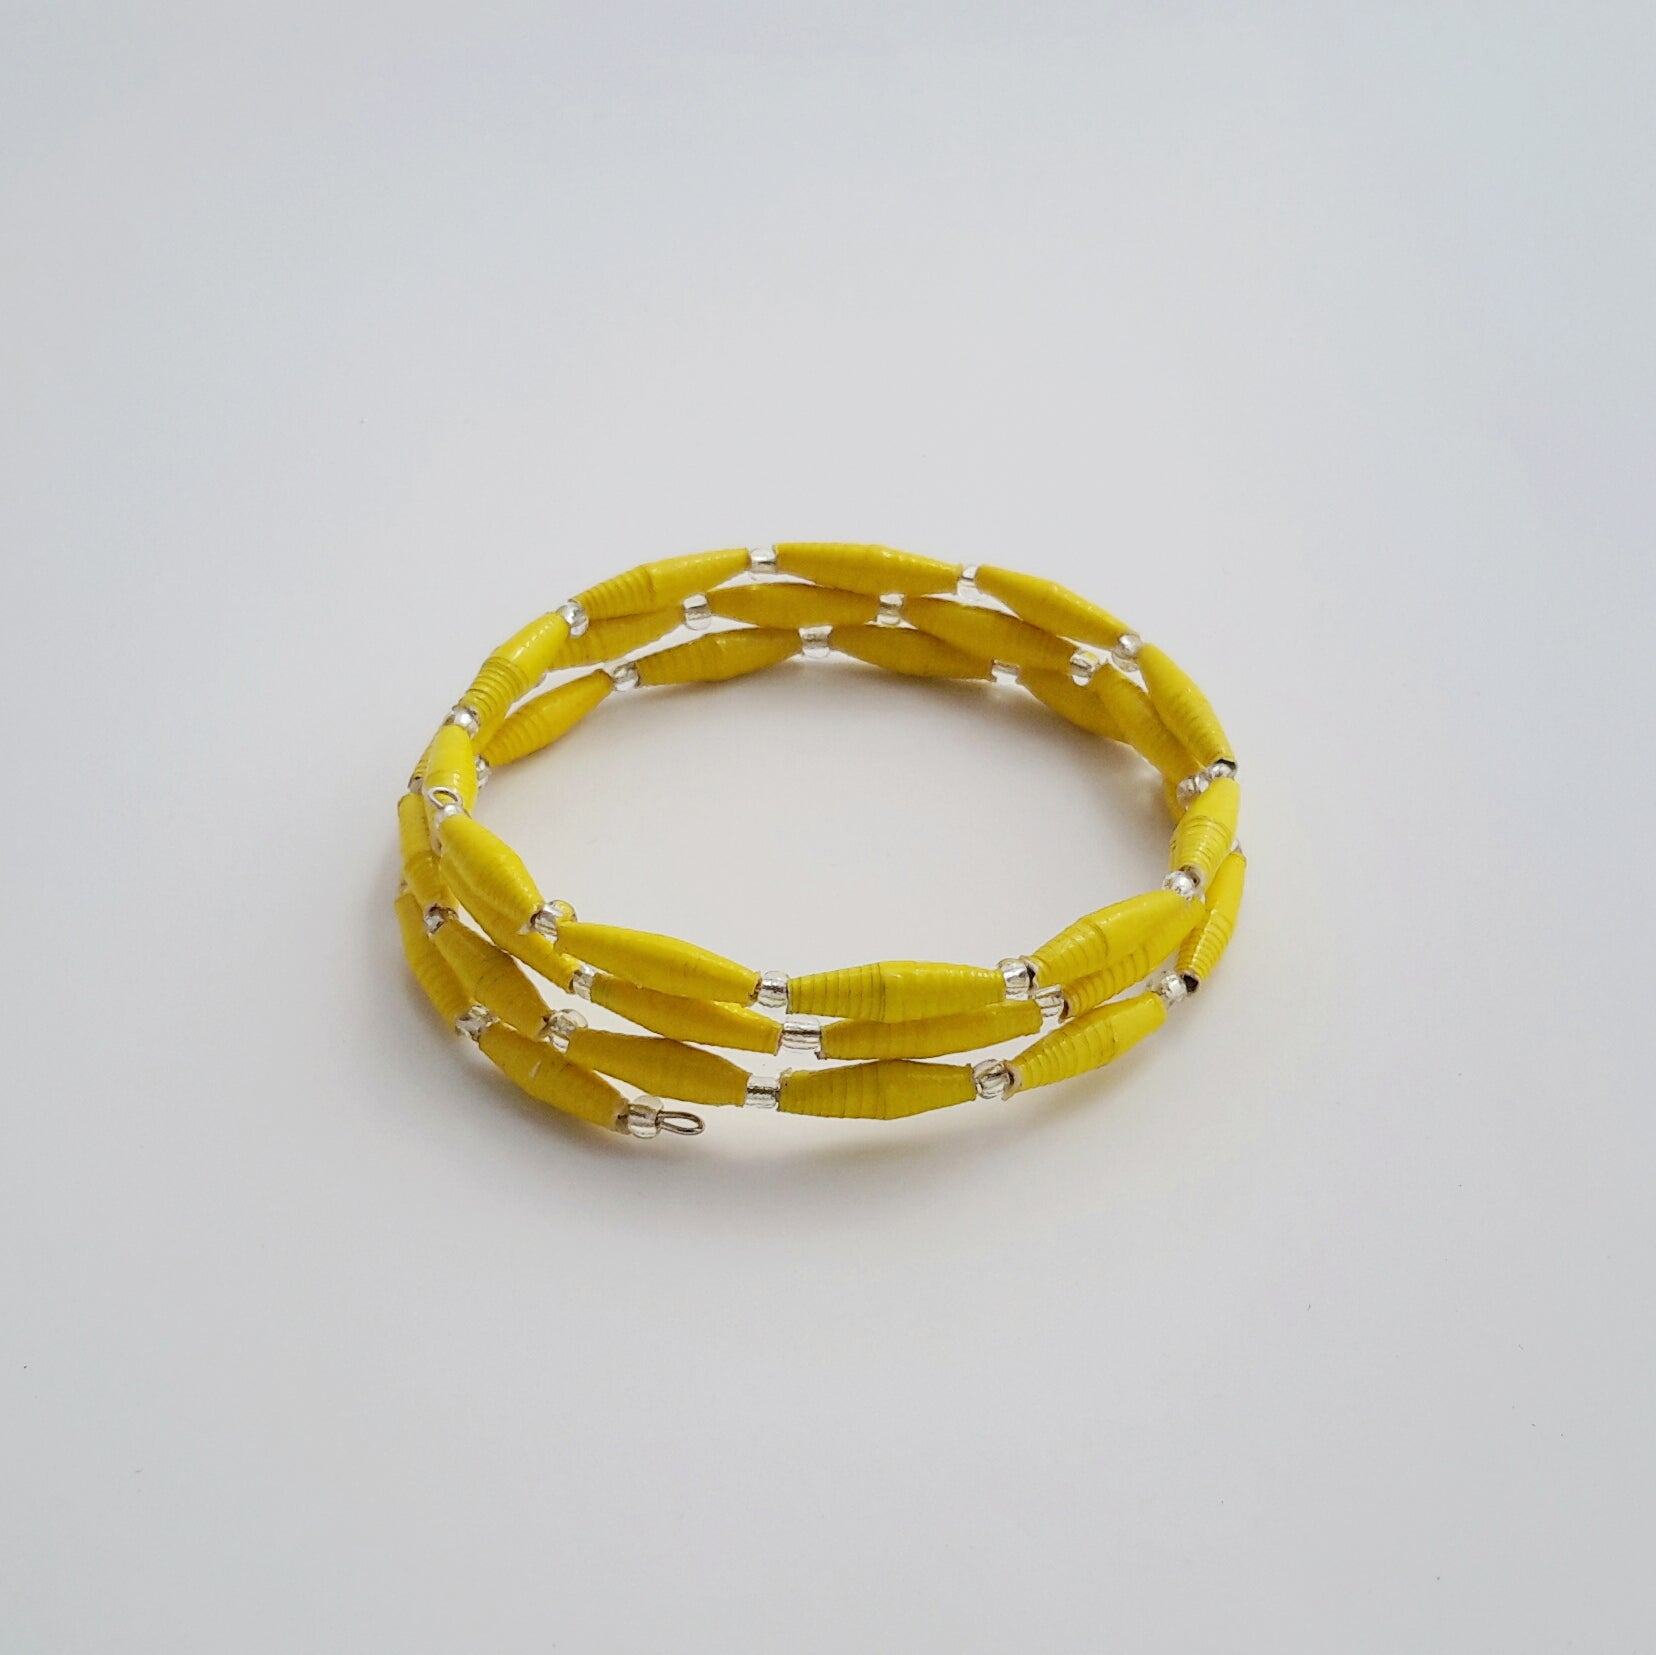 Hand made yellow design paper bead bracelet made out of recycled paper in Uganda by principles of fair trade, ethical and sustainable fashion, by Finnish brand, Agulu Paper Beads. Eettinen keltainen käsintehty design rannekoru, joka on tehty kierrätyspaperista reilun kaupan periaattein työllistämällä Ugandalaisia naisia.